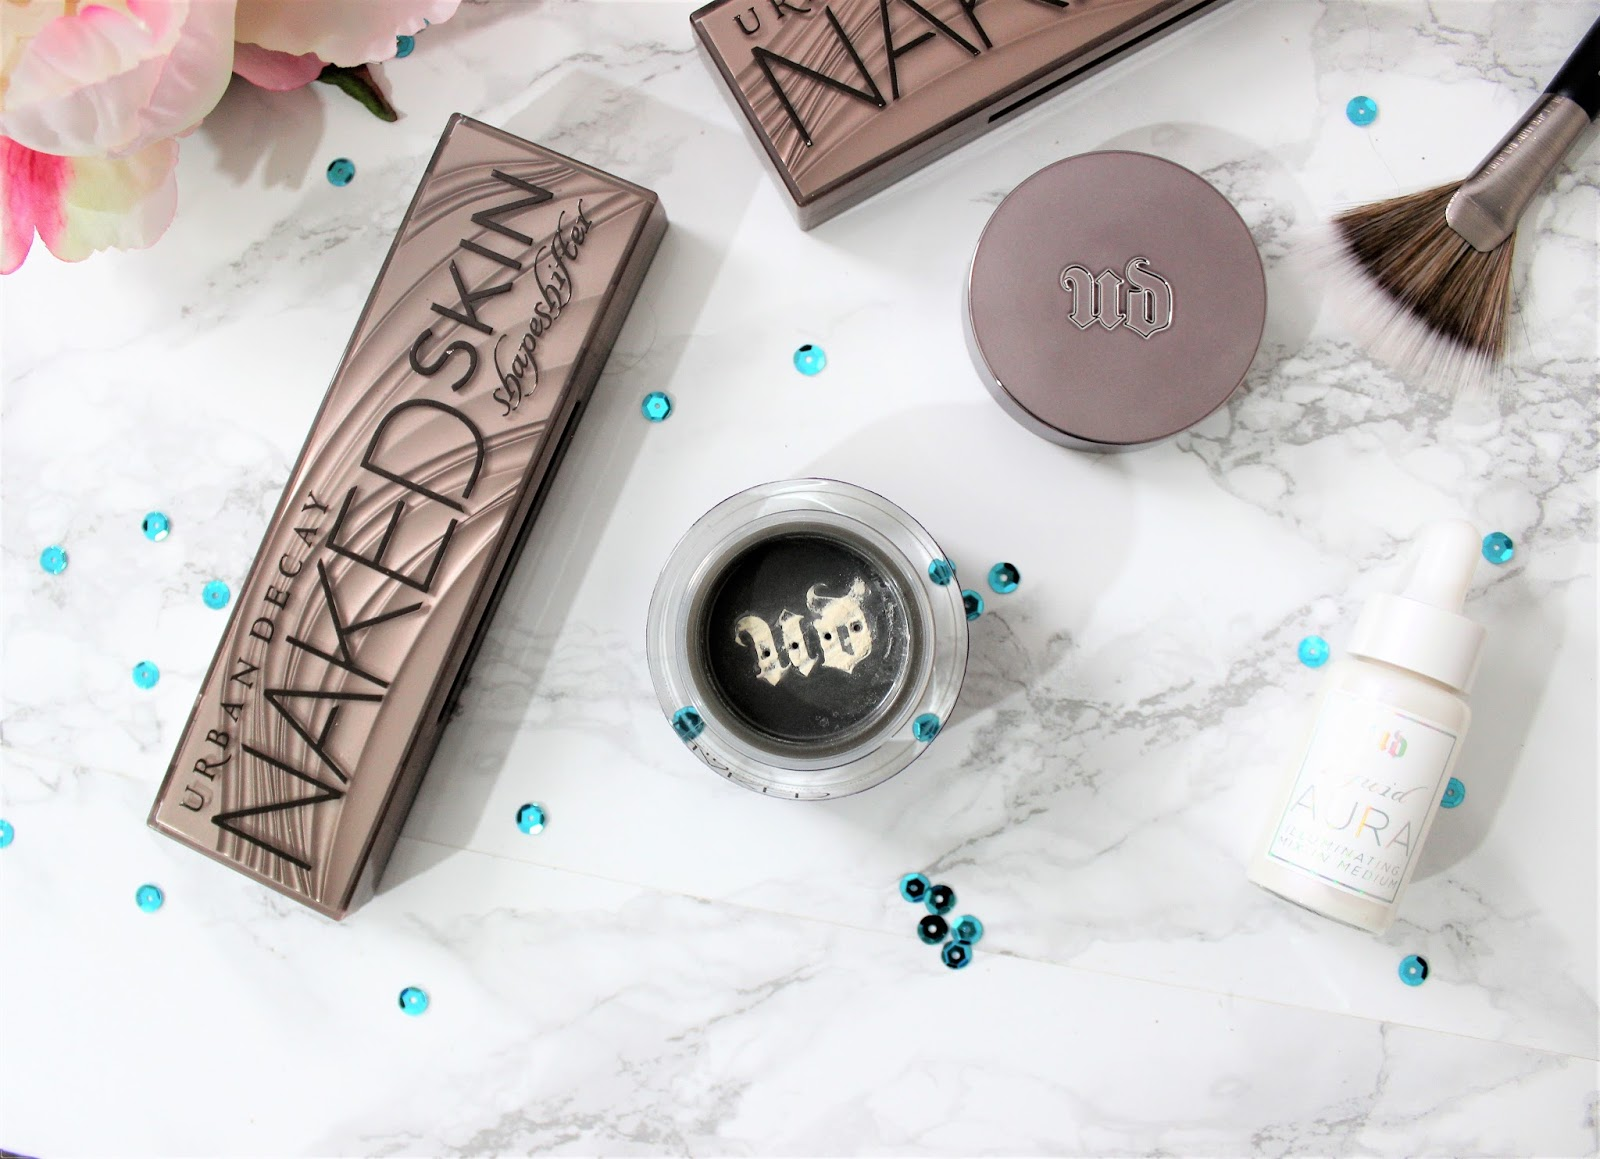 Urban Decay Translucent Powder